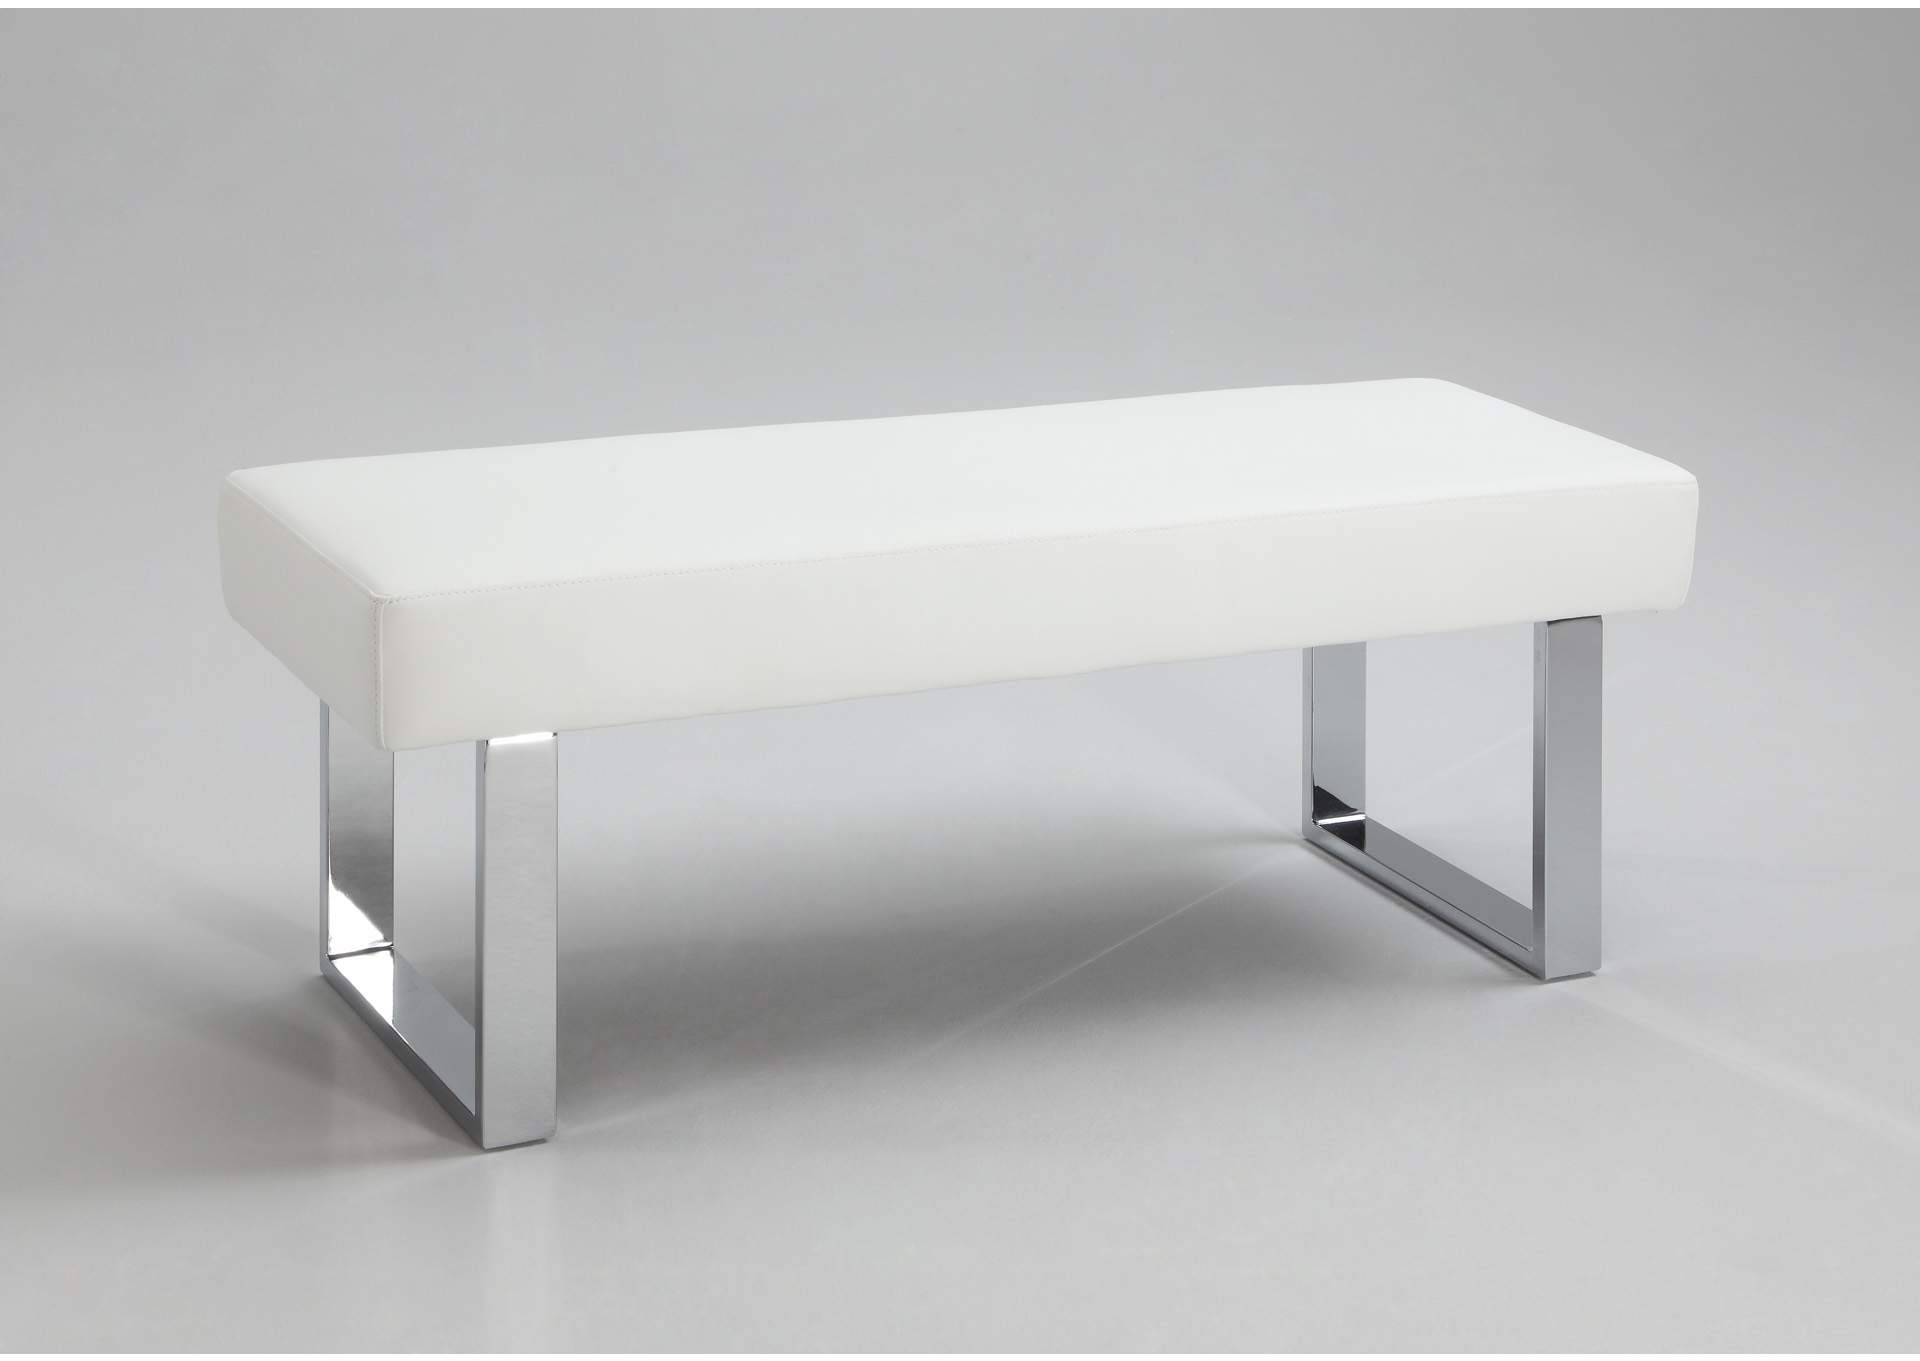 Linden White PU Leather Long Bench,Chintaly Imports